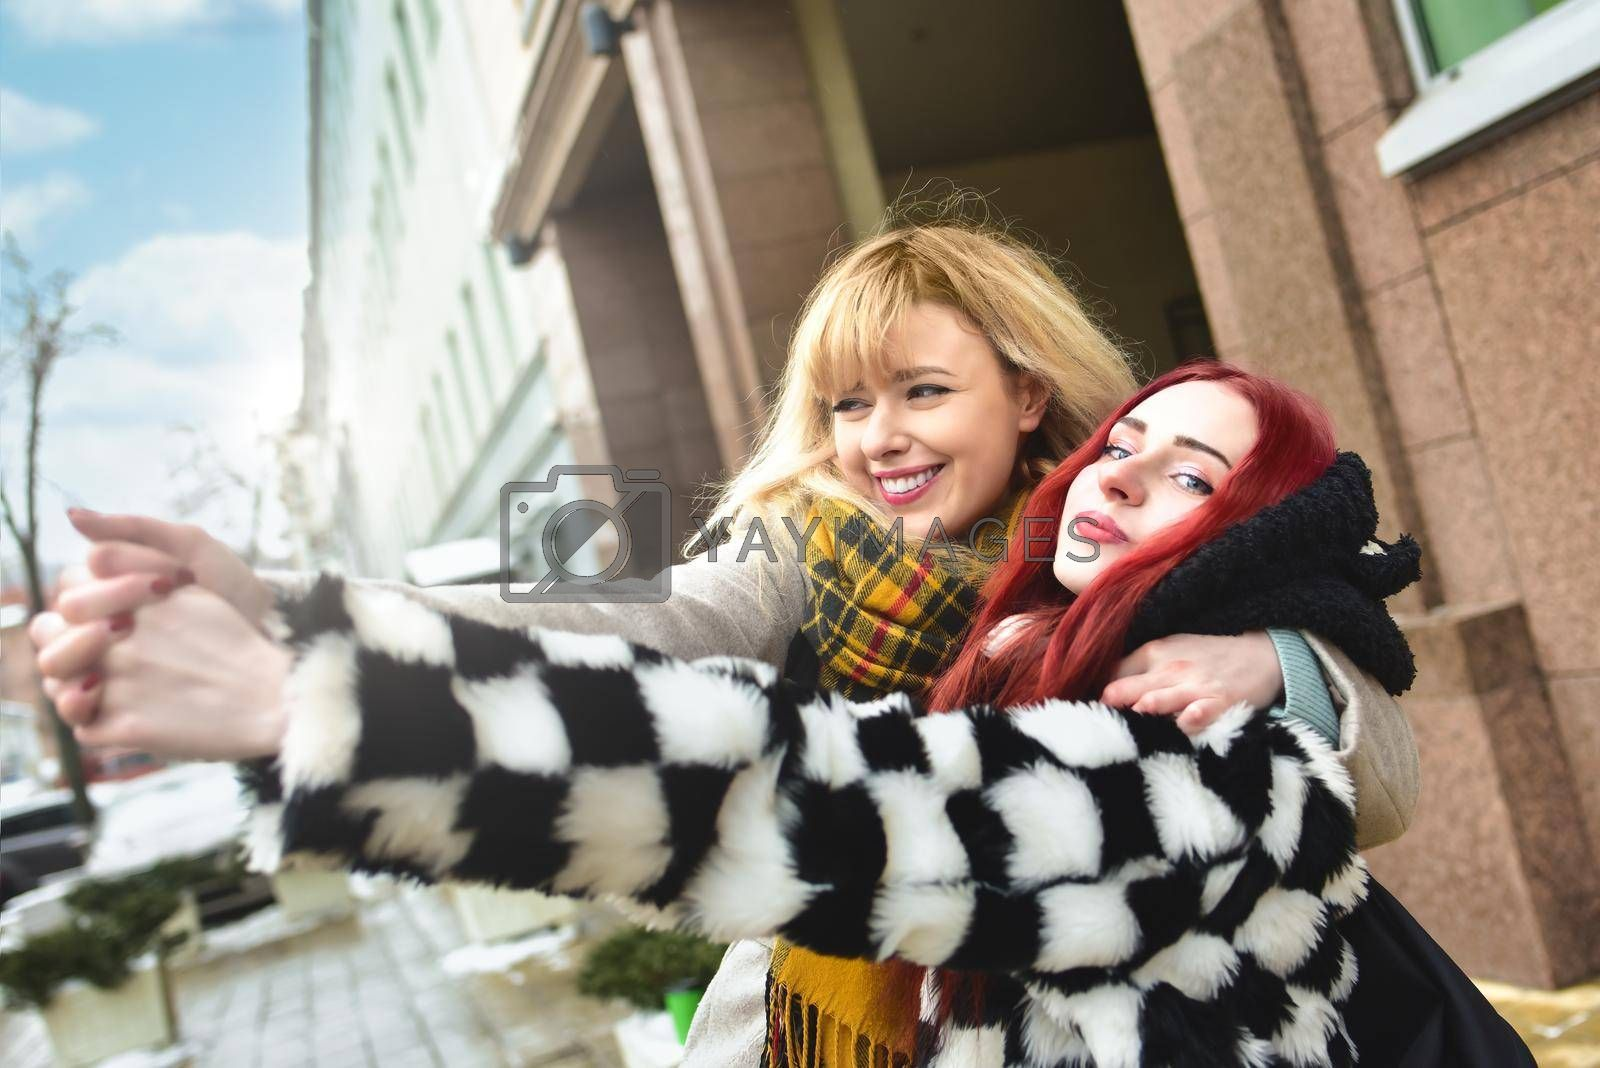 Royalty free image of Young pretty girls best friends smiling and having fun, walking at the city. Shopping. Wearing stylish outerwear. Bright make up. Positive emotions. Outdoors lifestyle fashion close up portrait by Nickstock